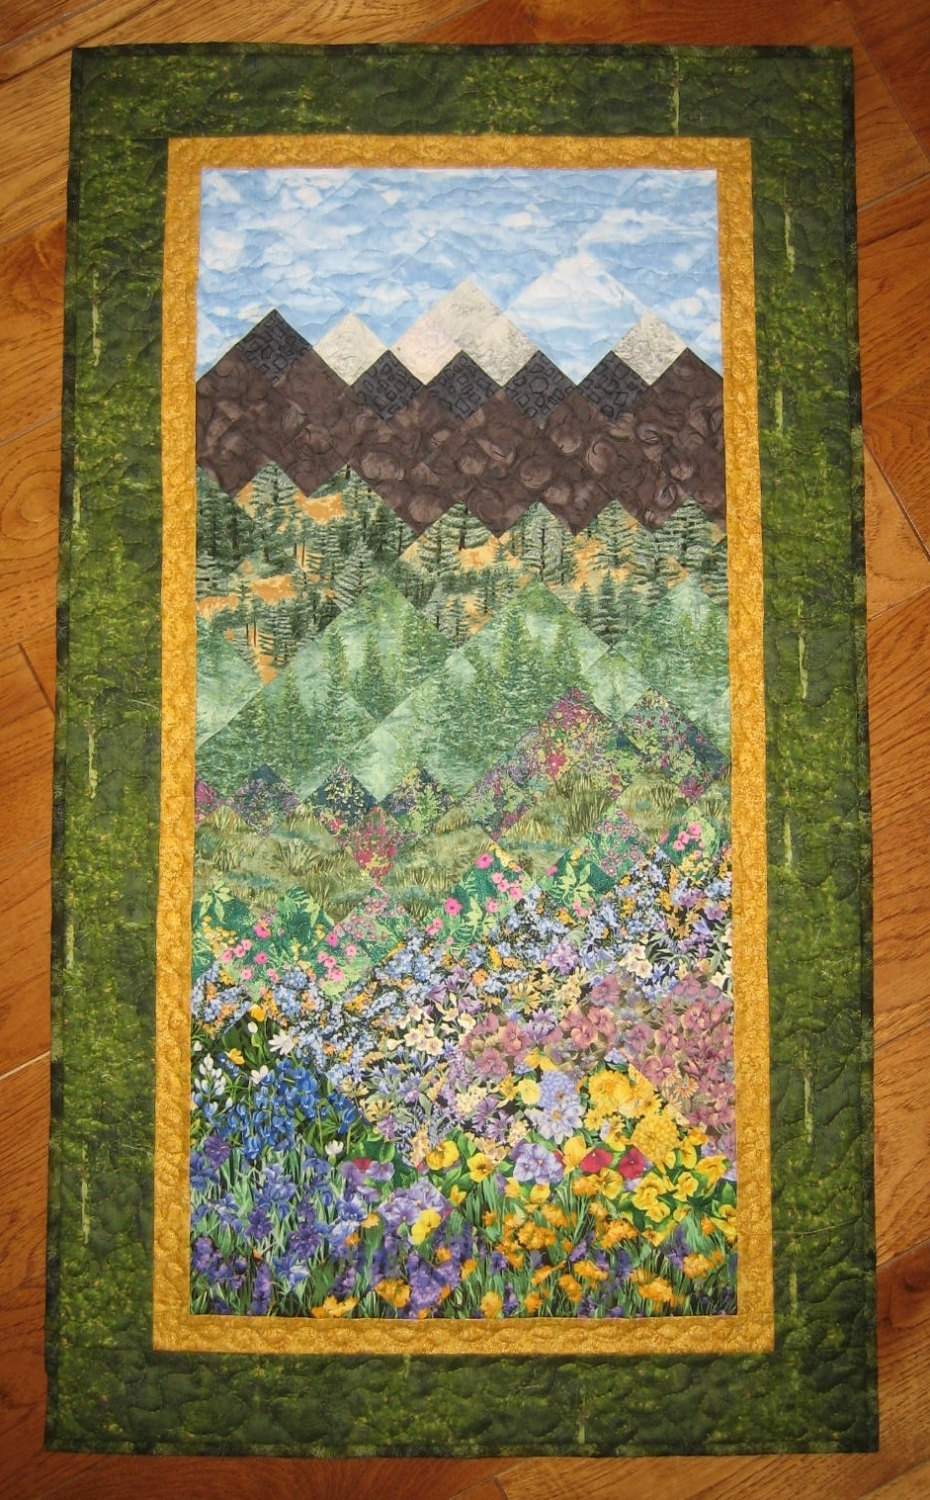 Art Quilt Fabric Wallhanging Pine Trees Mountain Flowers Handmade Pertaining To Most Recently Released Quilt Fabric Wall Art (View 13 of 15)